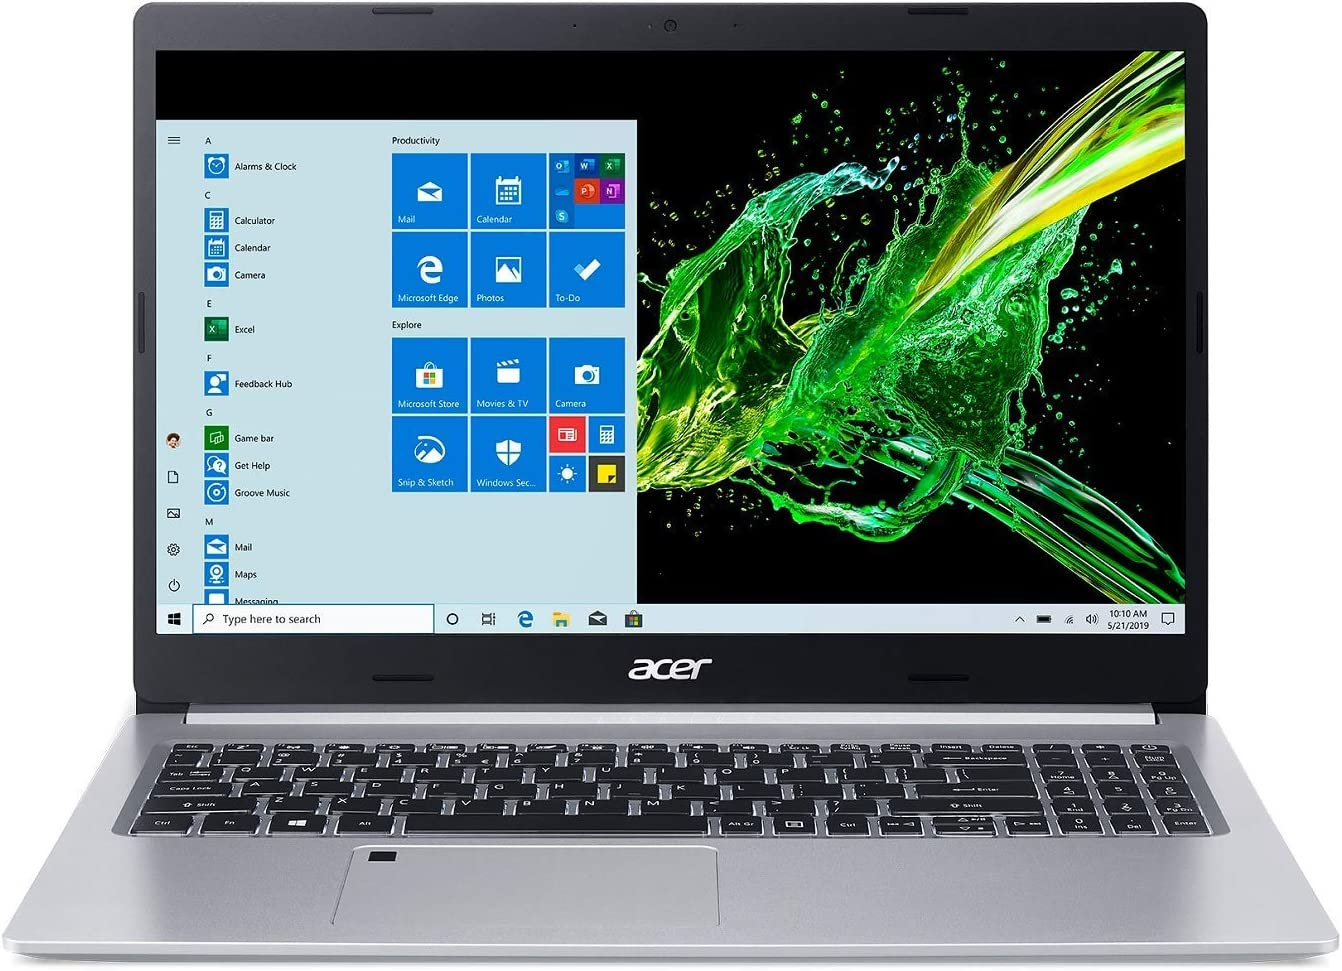 "Acer Aspire 5 A515-55-56VK, 15.6"" Full HD IPS Display, 10th Gen Intel Core i5-1035G1, 8GB DDR4, 256GB NVMe SSD, WiFi 6, HD Webcam, Fingerprint Reader, Backlit Keyboard, Windows 10 Home (Renewed)"